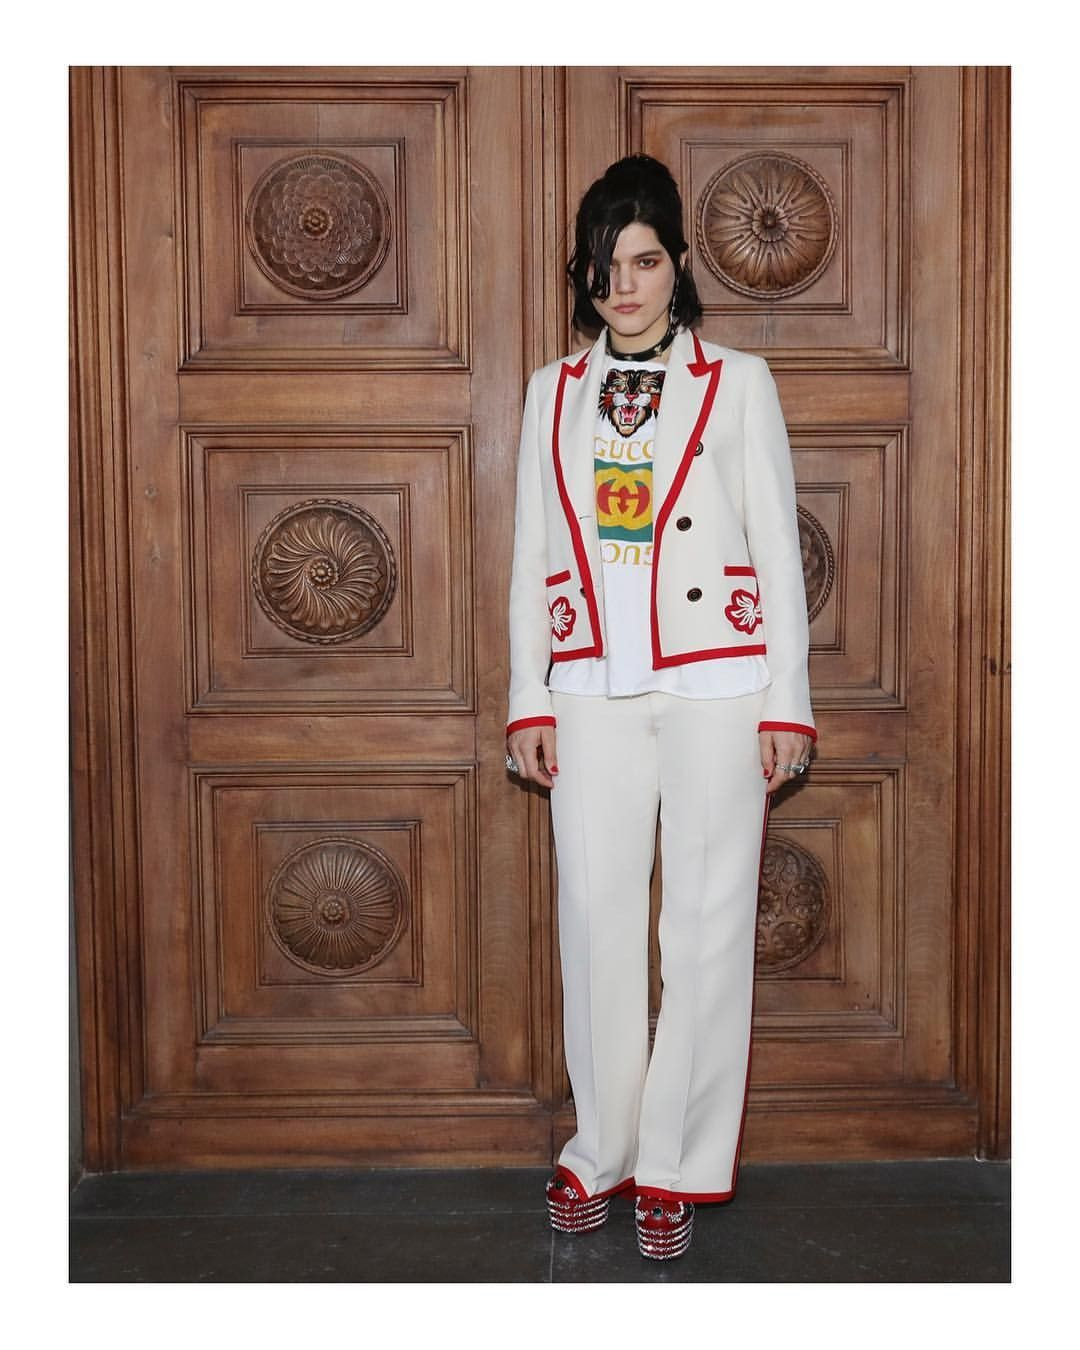 3358e0fb2022 Celebrity style to buy gucci products click on pin and choose gucci brand  from categories to